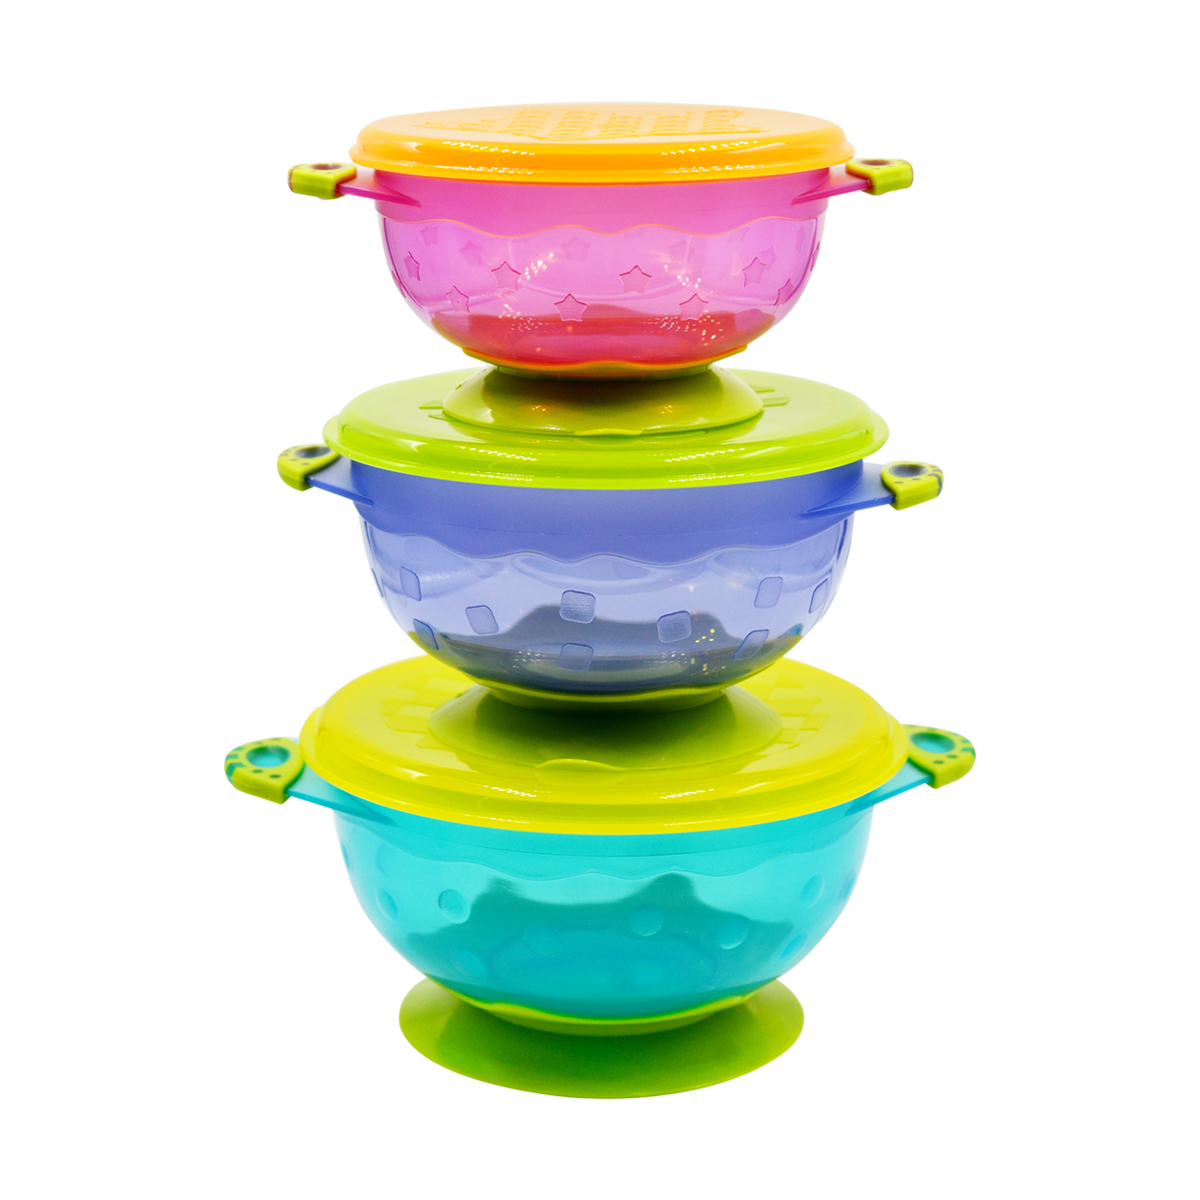 Stackable Stay-Put Suction Bowl Feeding Set with Spill-Proof Lid